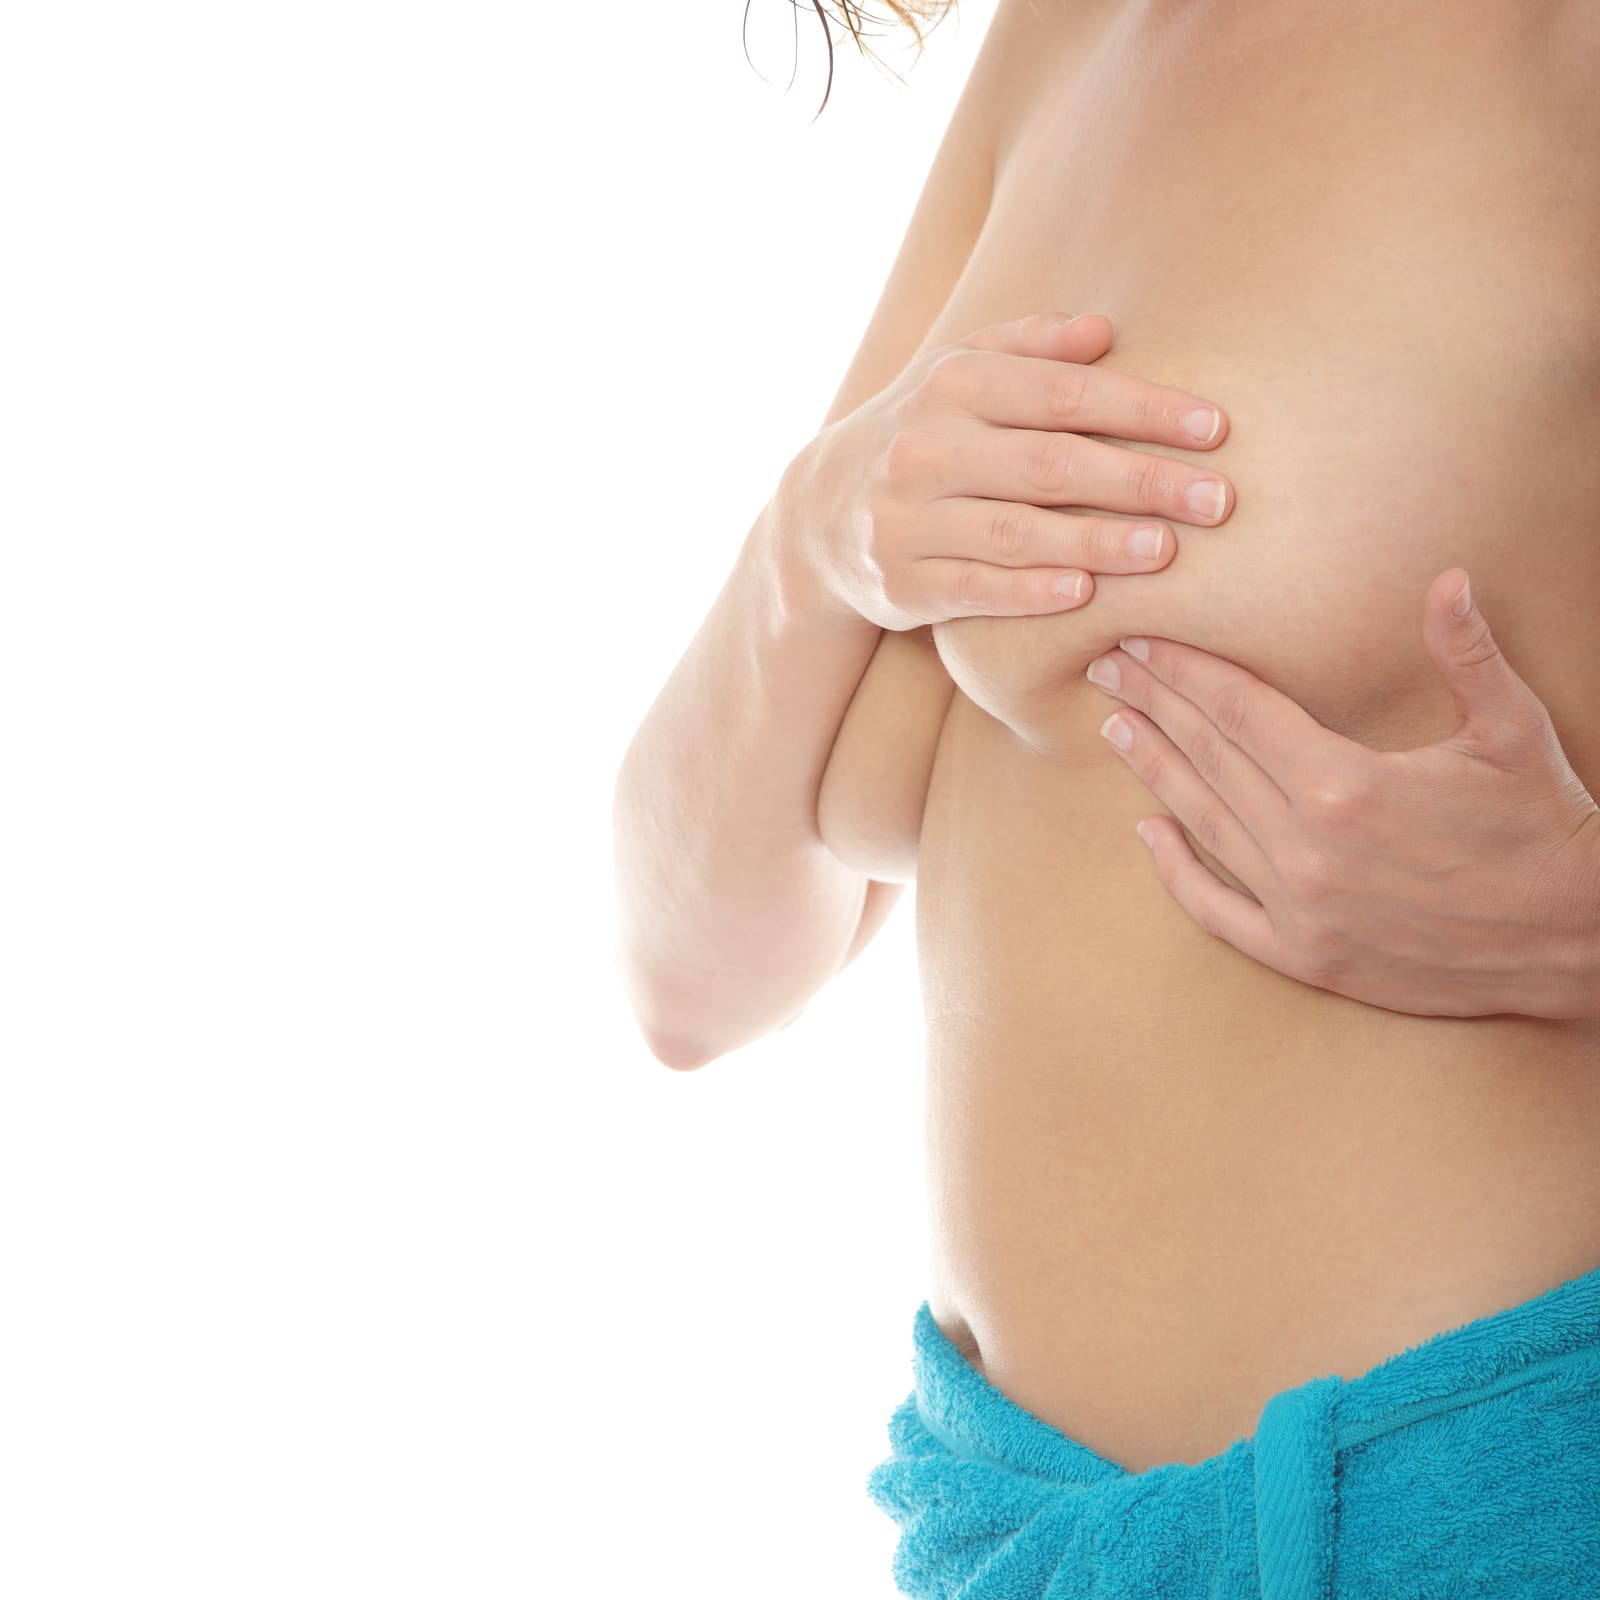 Young Caucasian adult woman examining her breast for lumps or signs of breast cancer